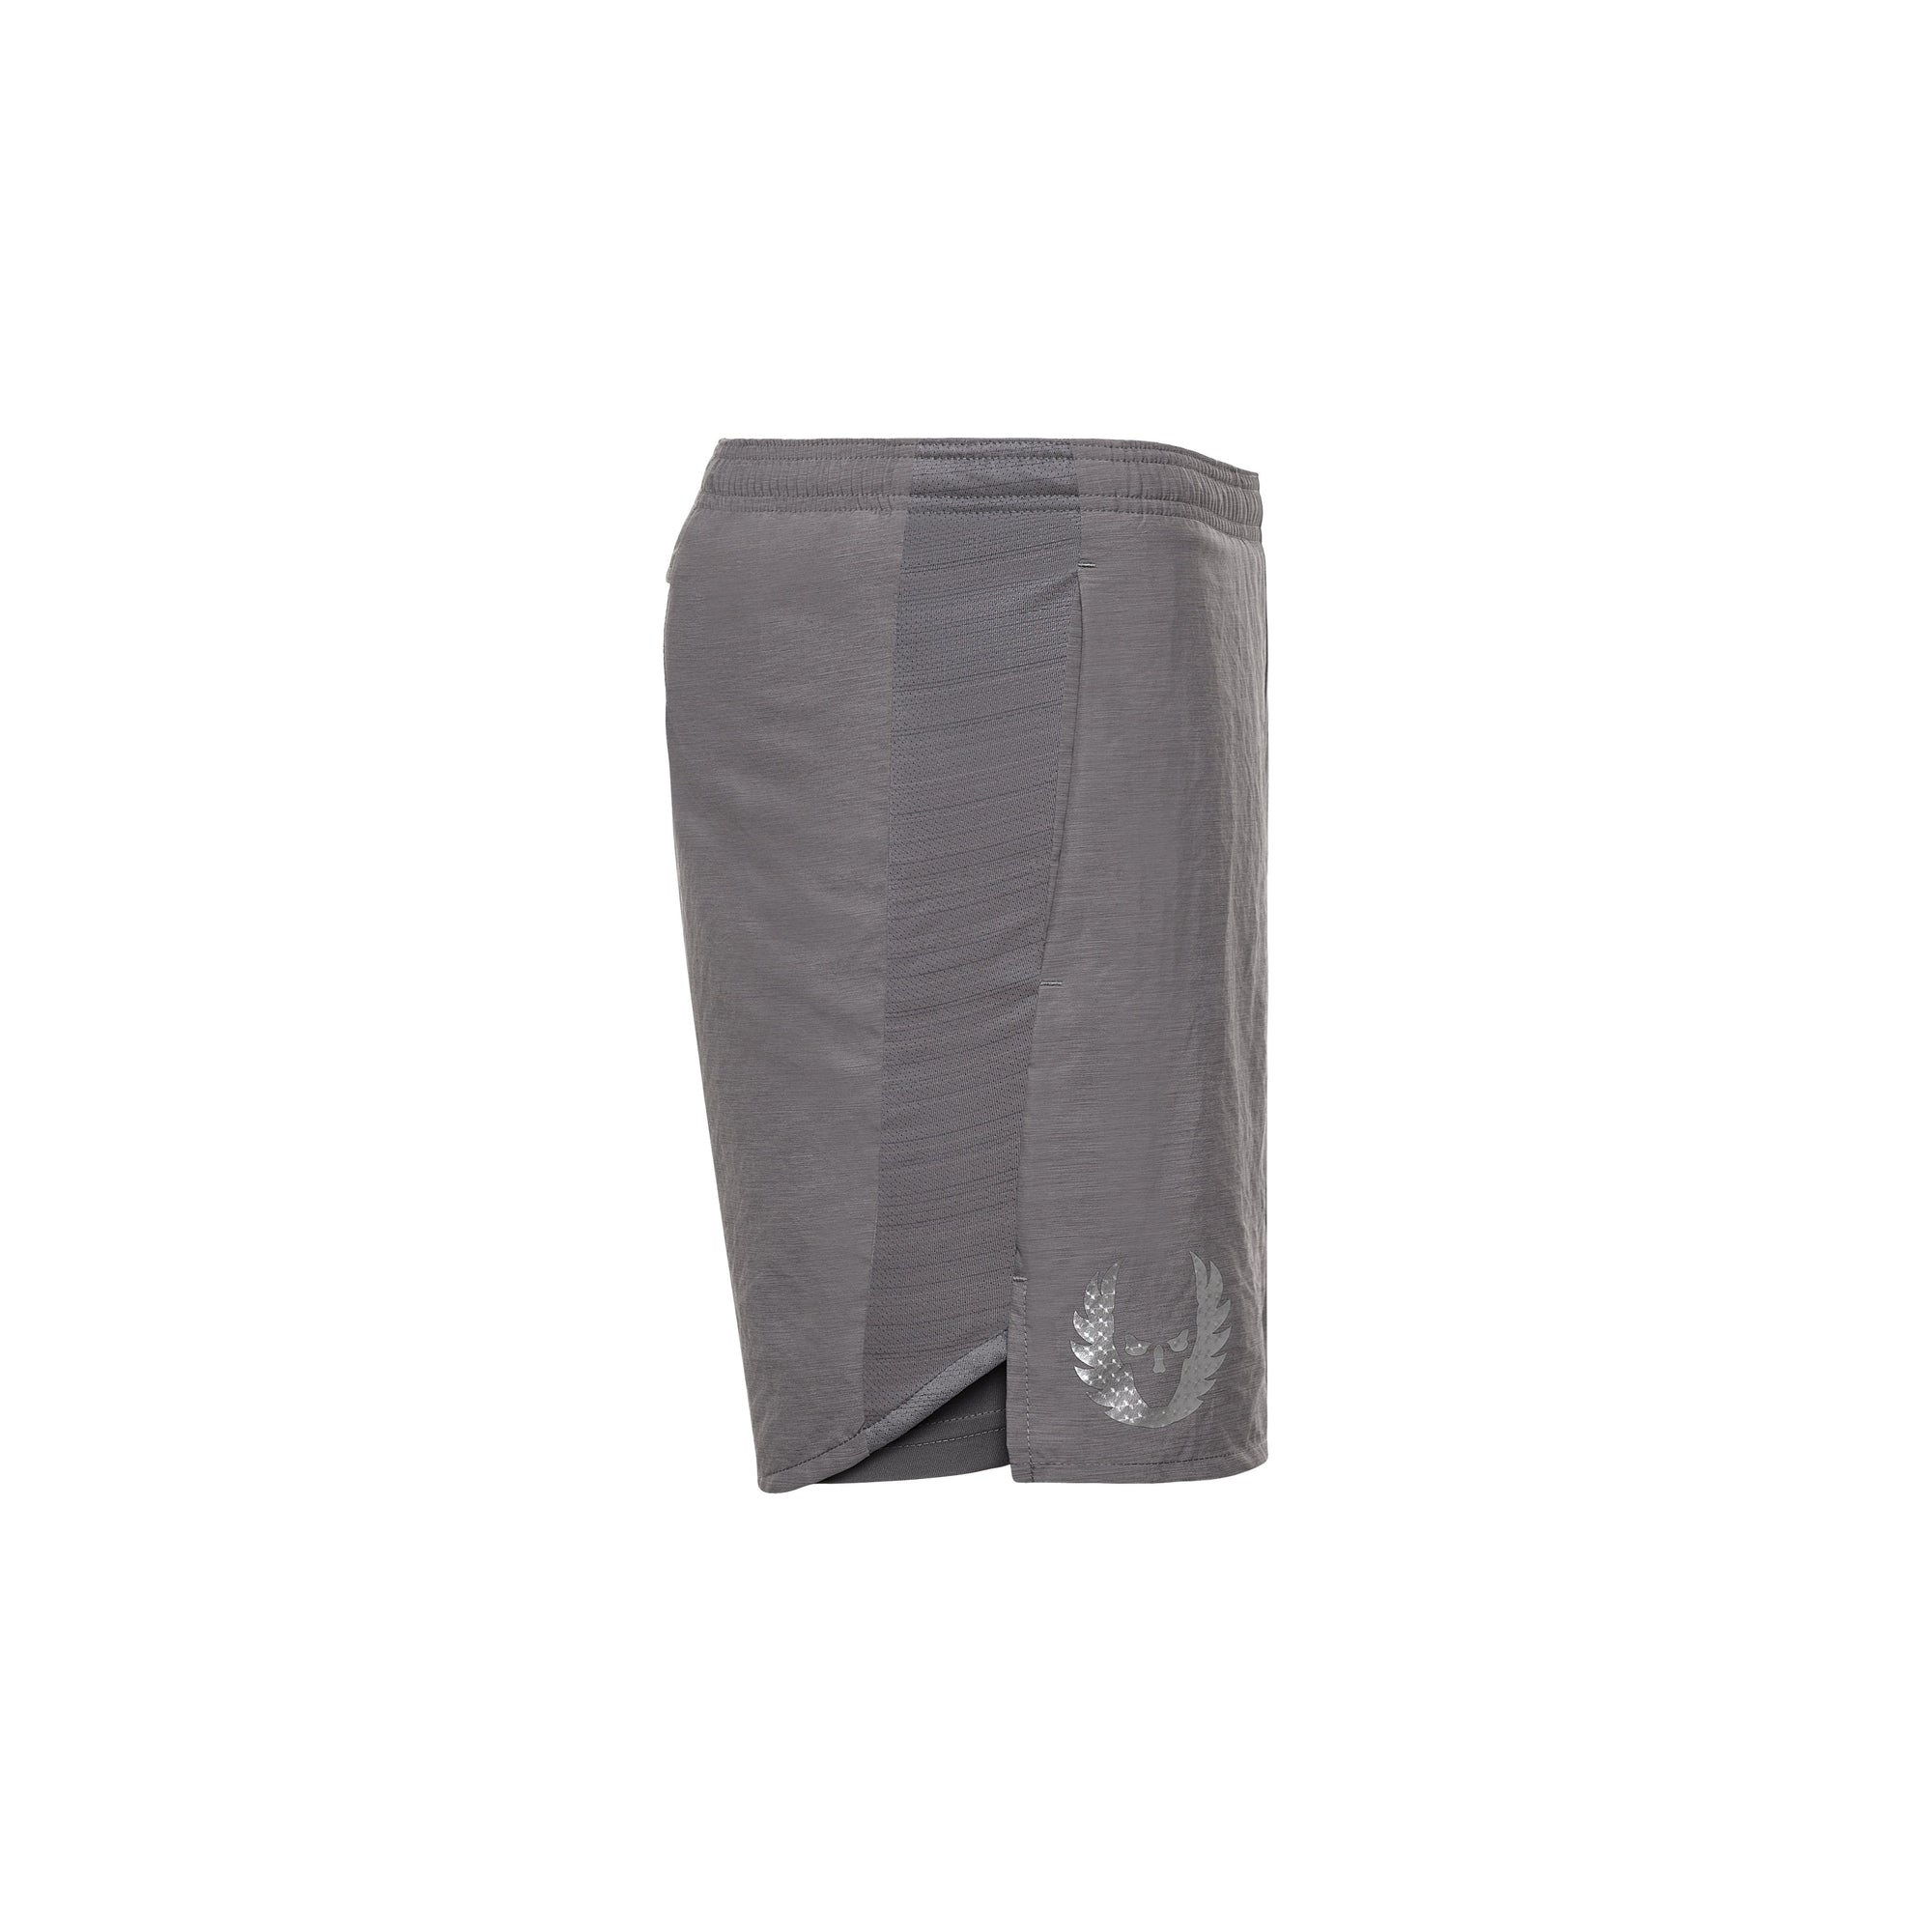 "Challenger 7"" 2-in-1 Running Shorts"